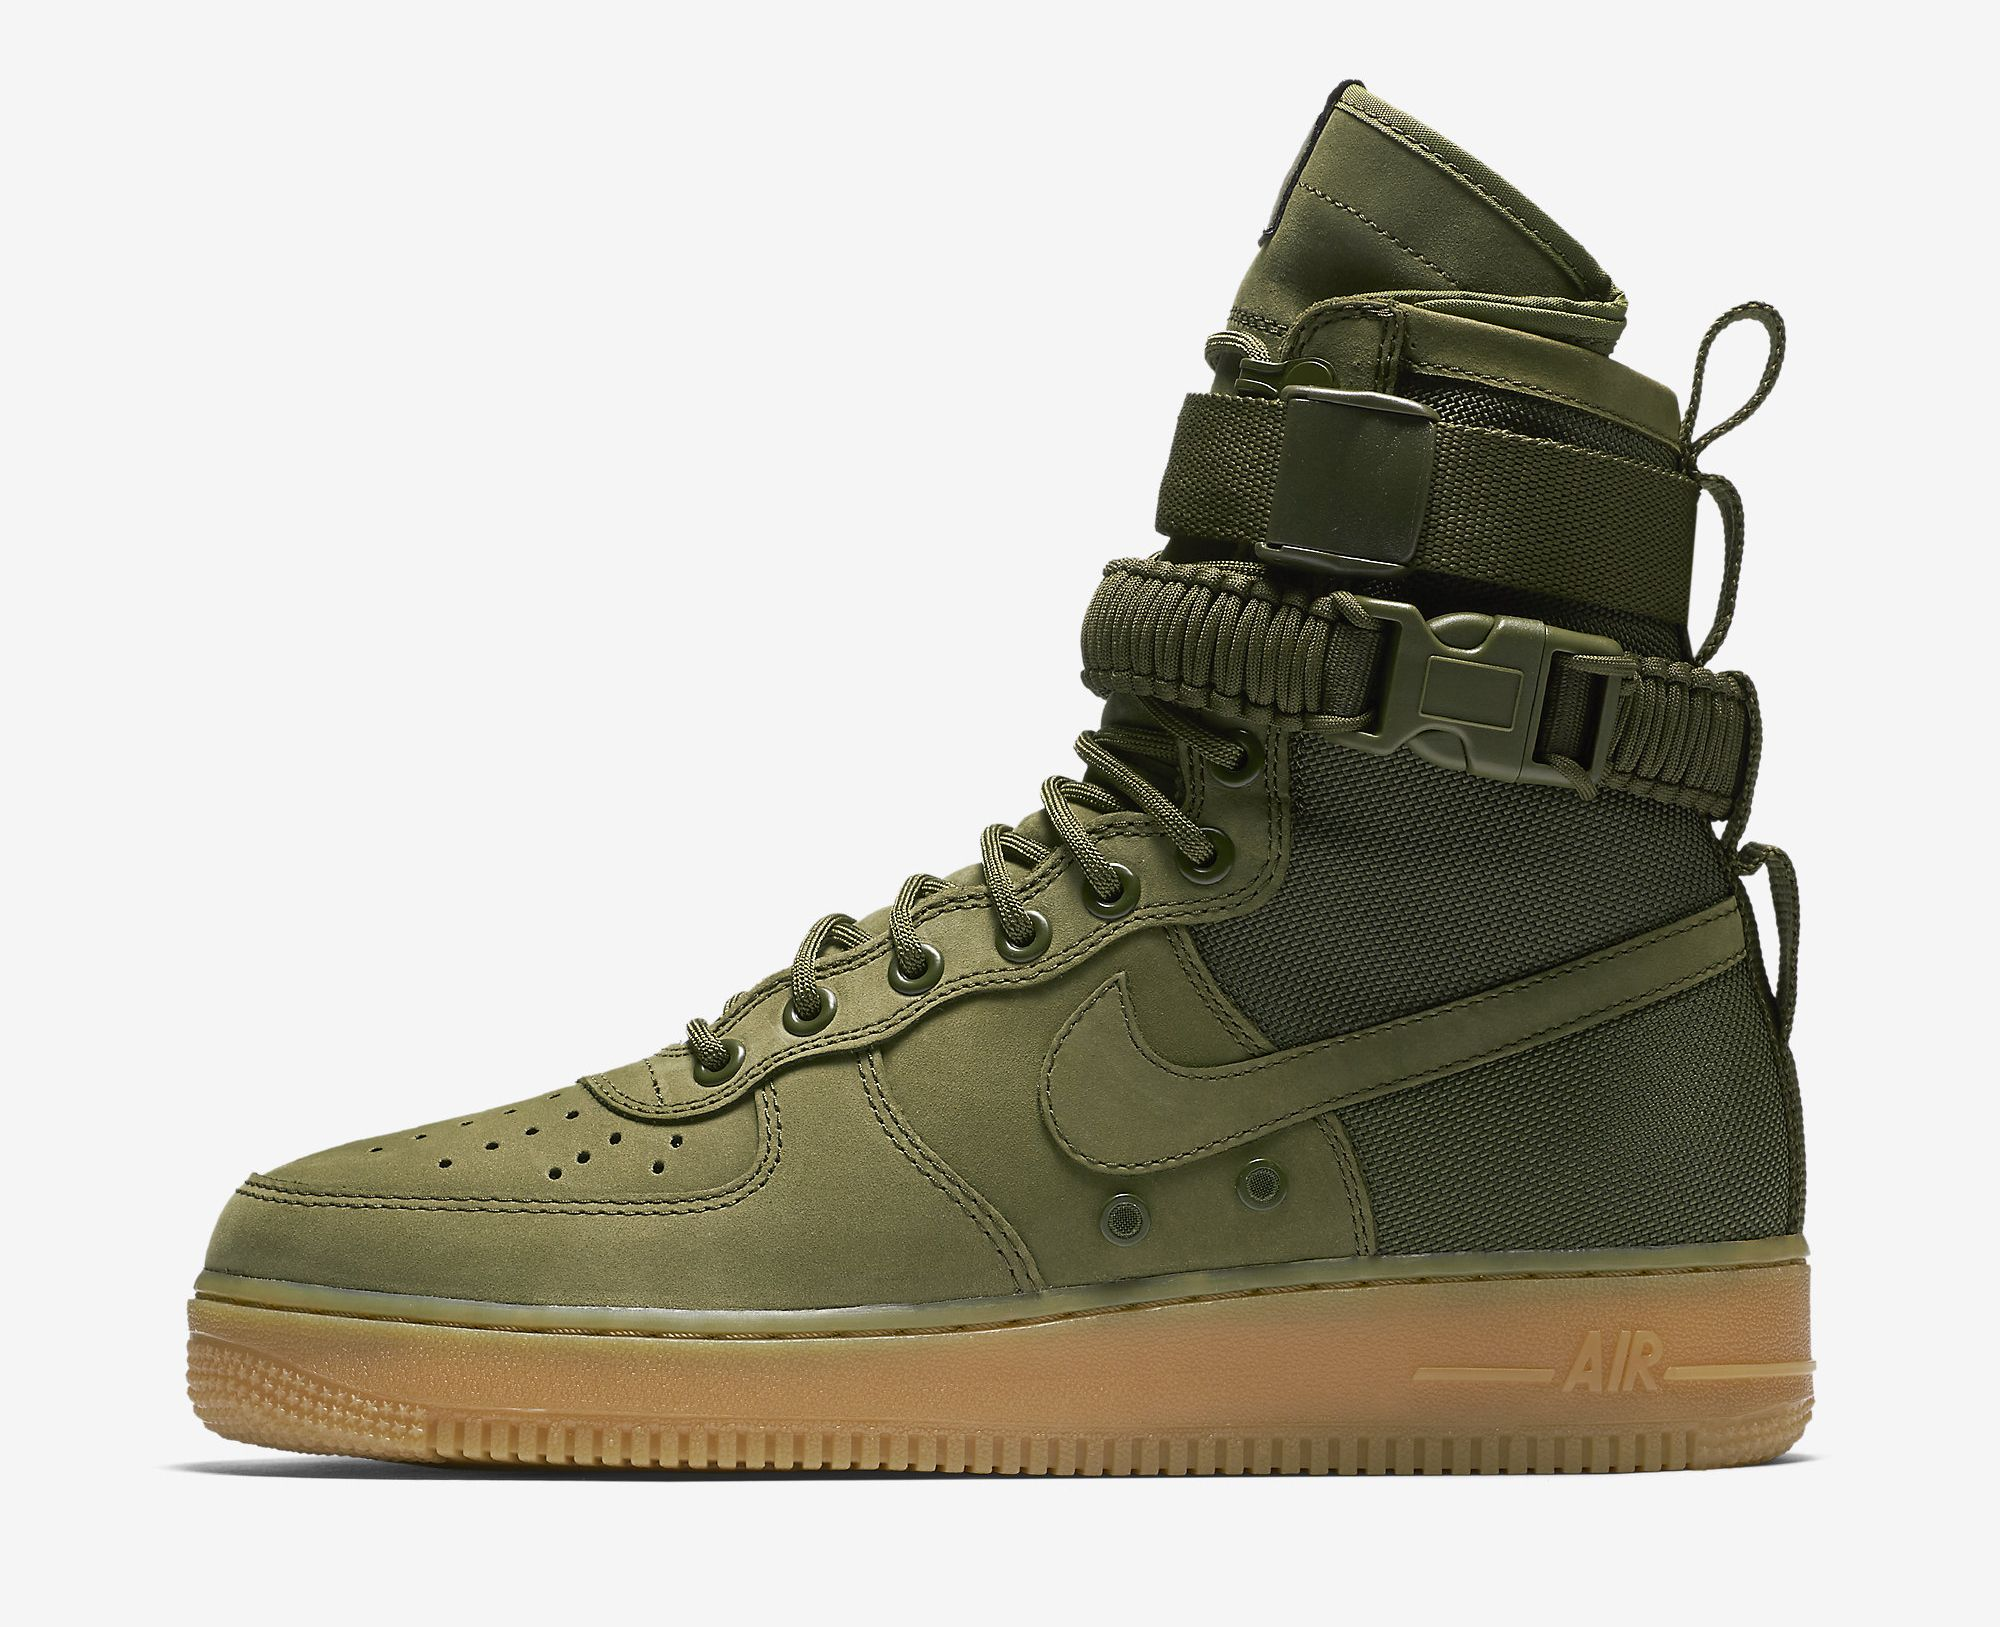 hot sale online 045d0 03e37 ... Nike Special Field Air Force 1 Release Date ...